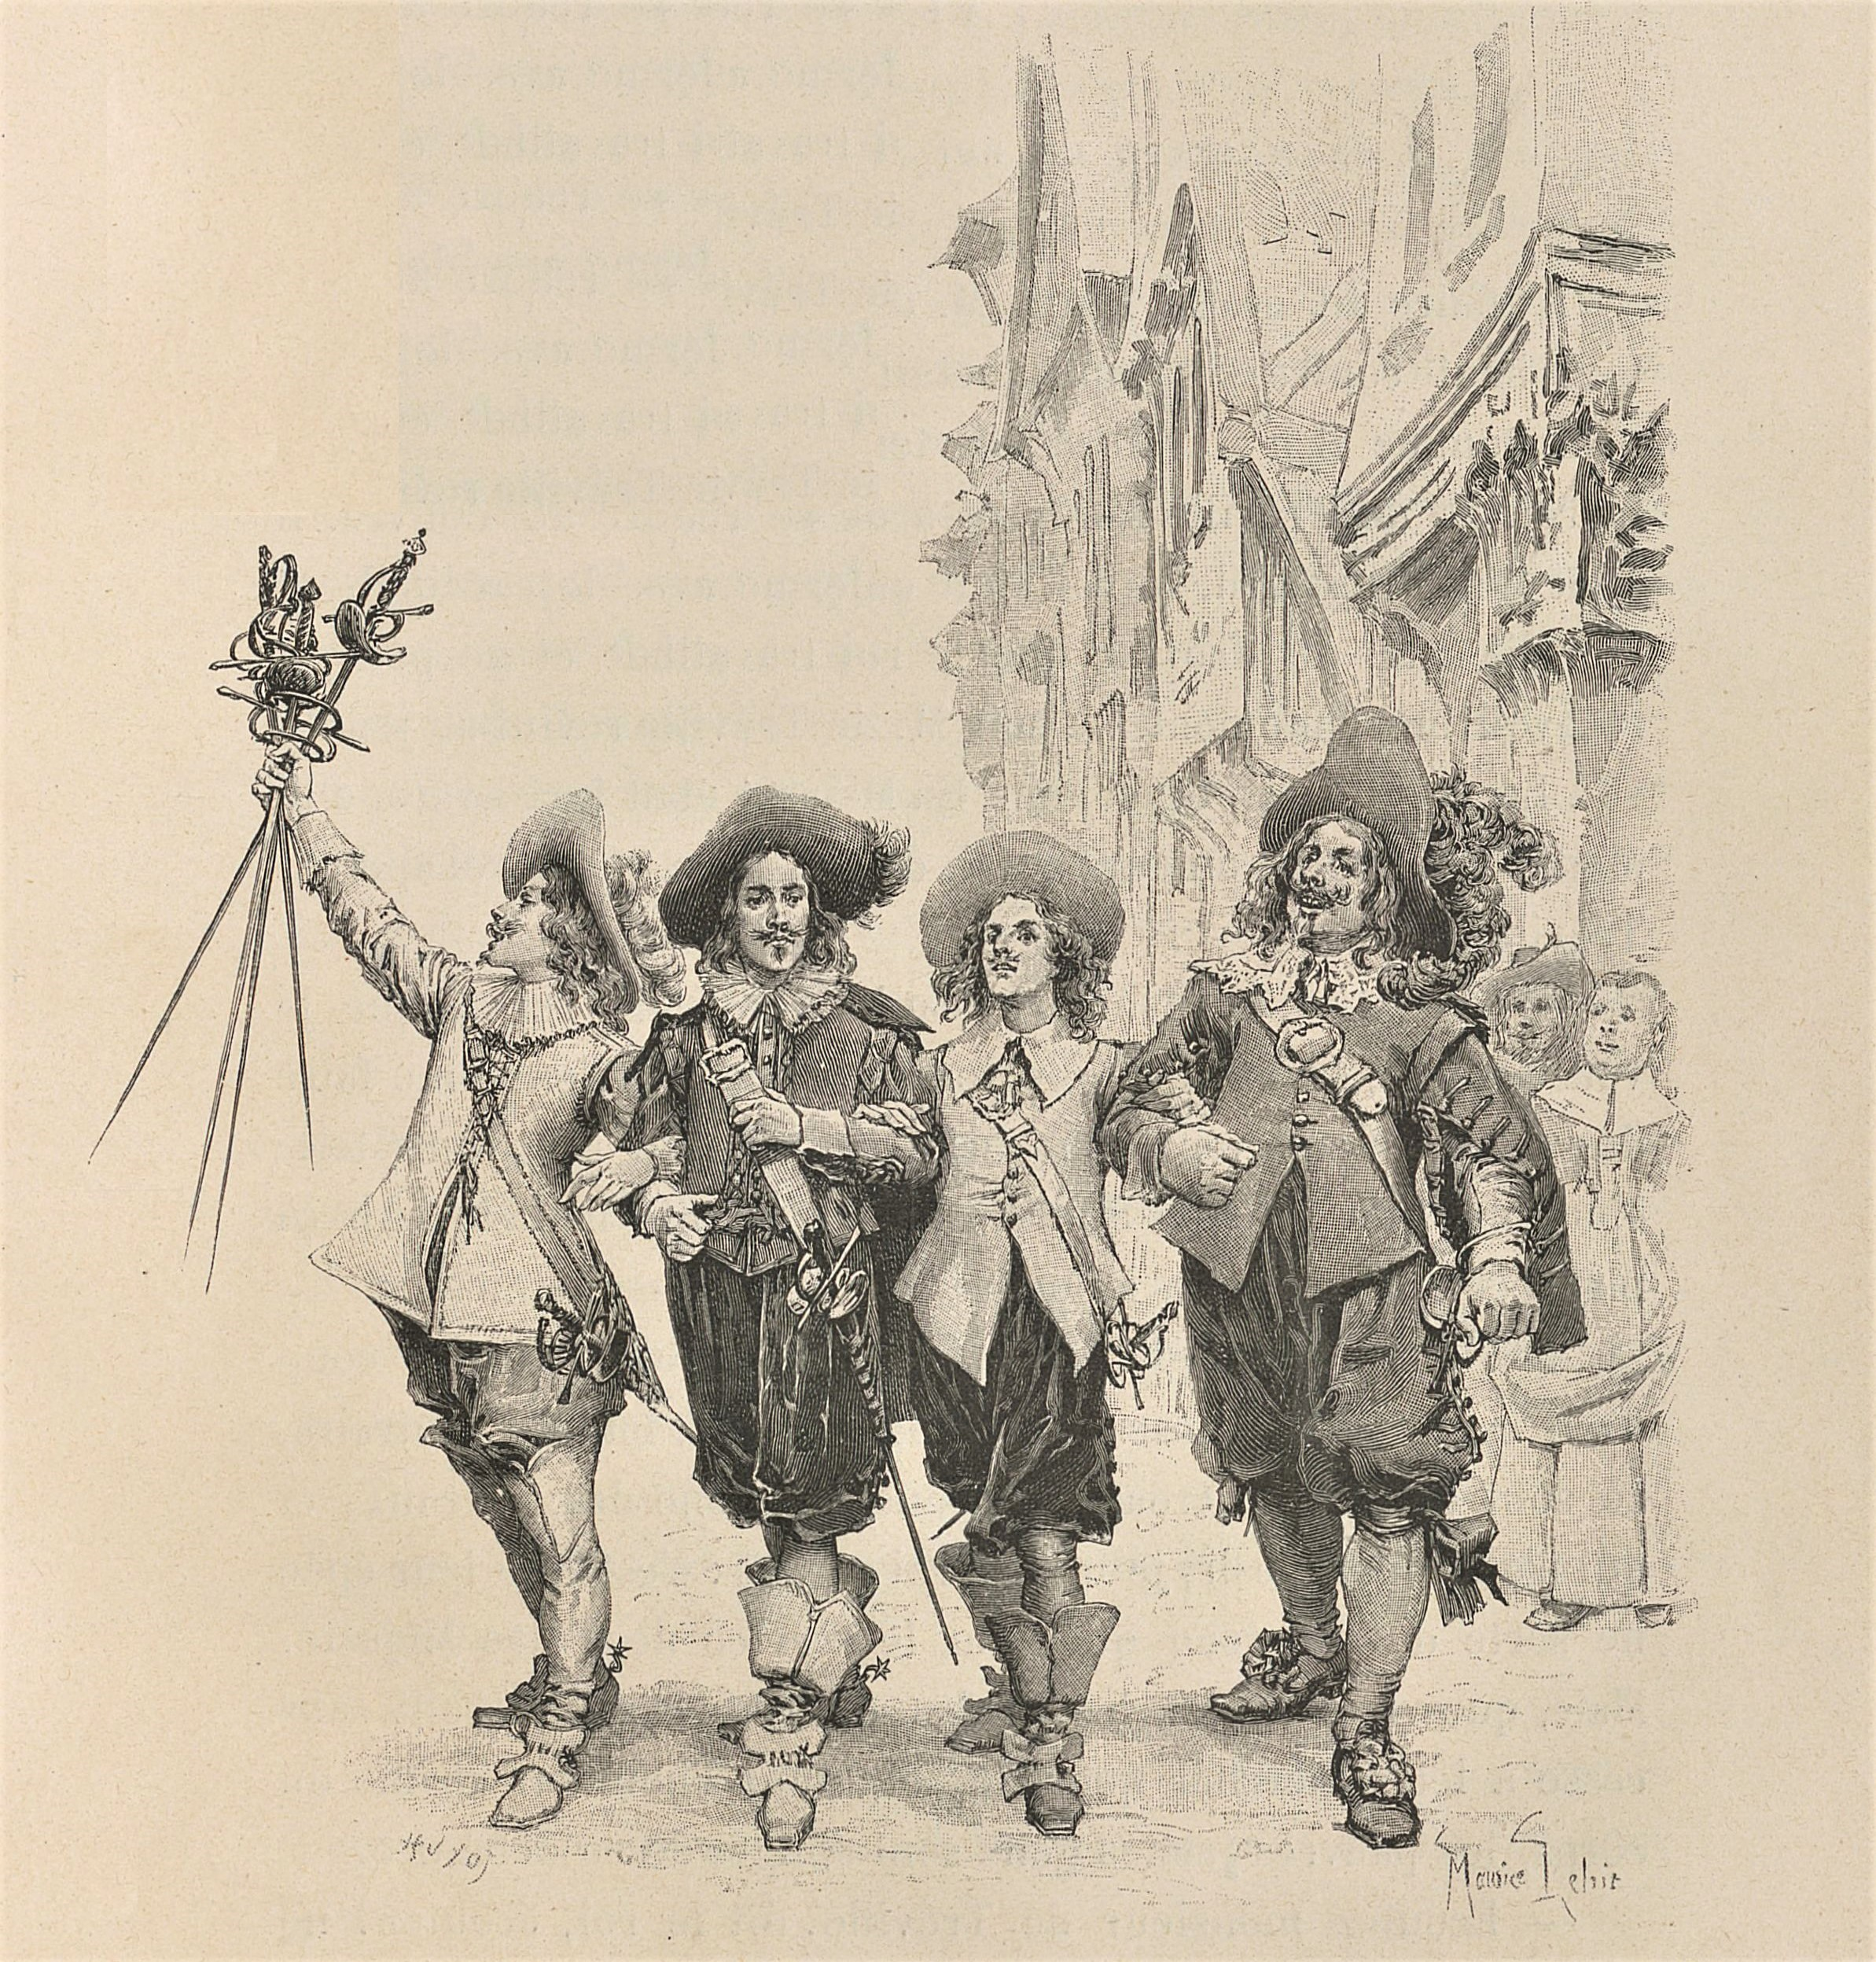 FACTS : Was the Author of The Three Musketeers a Black Man?